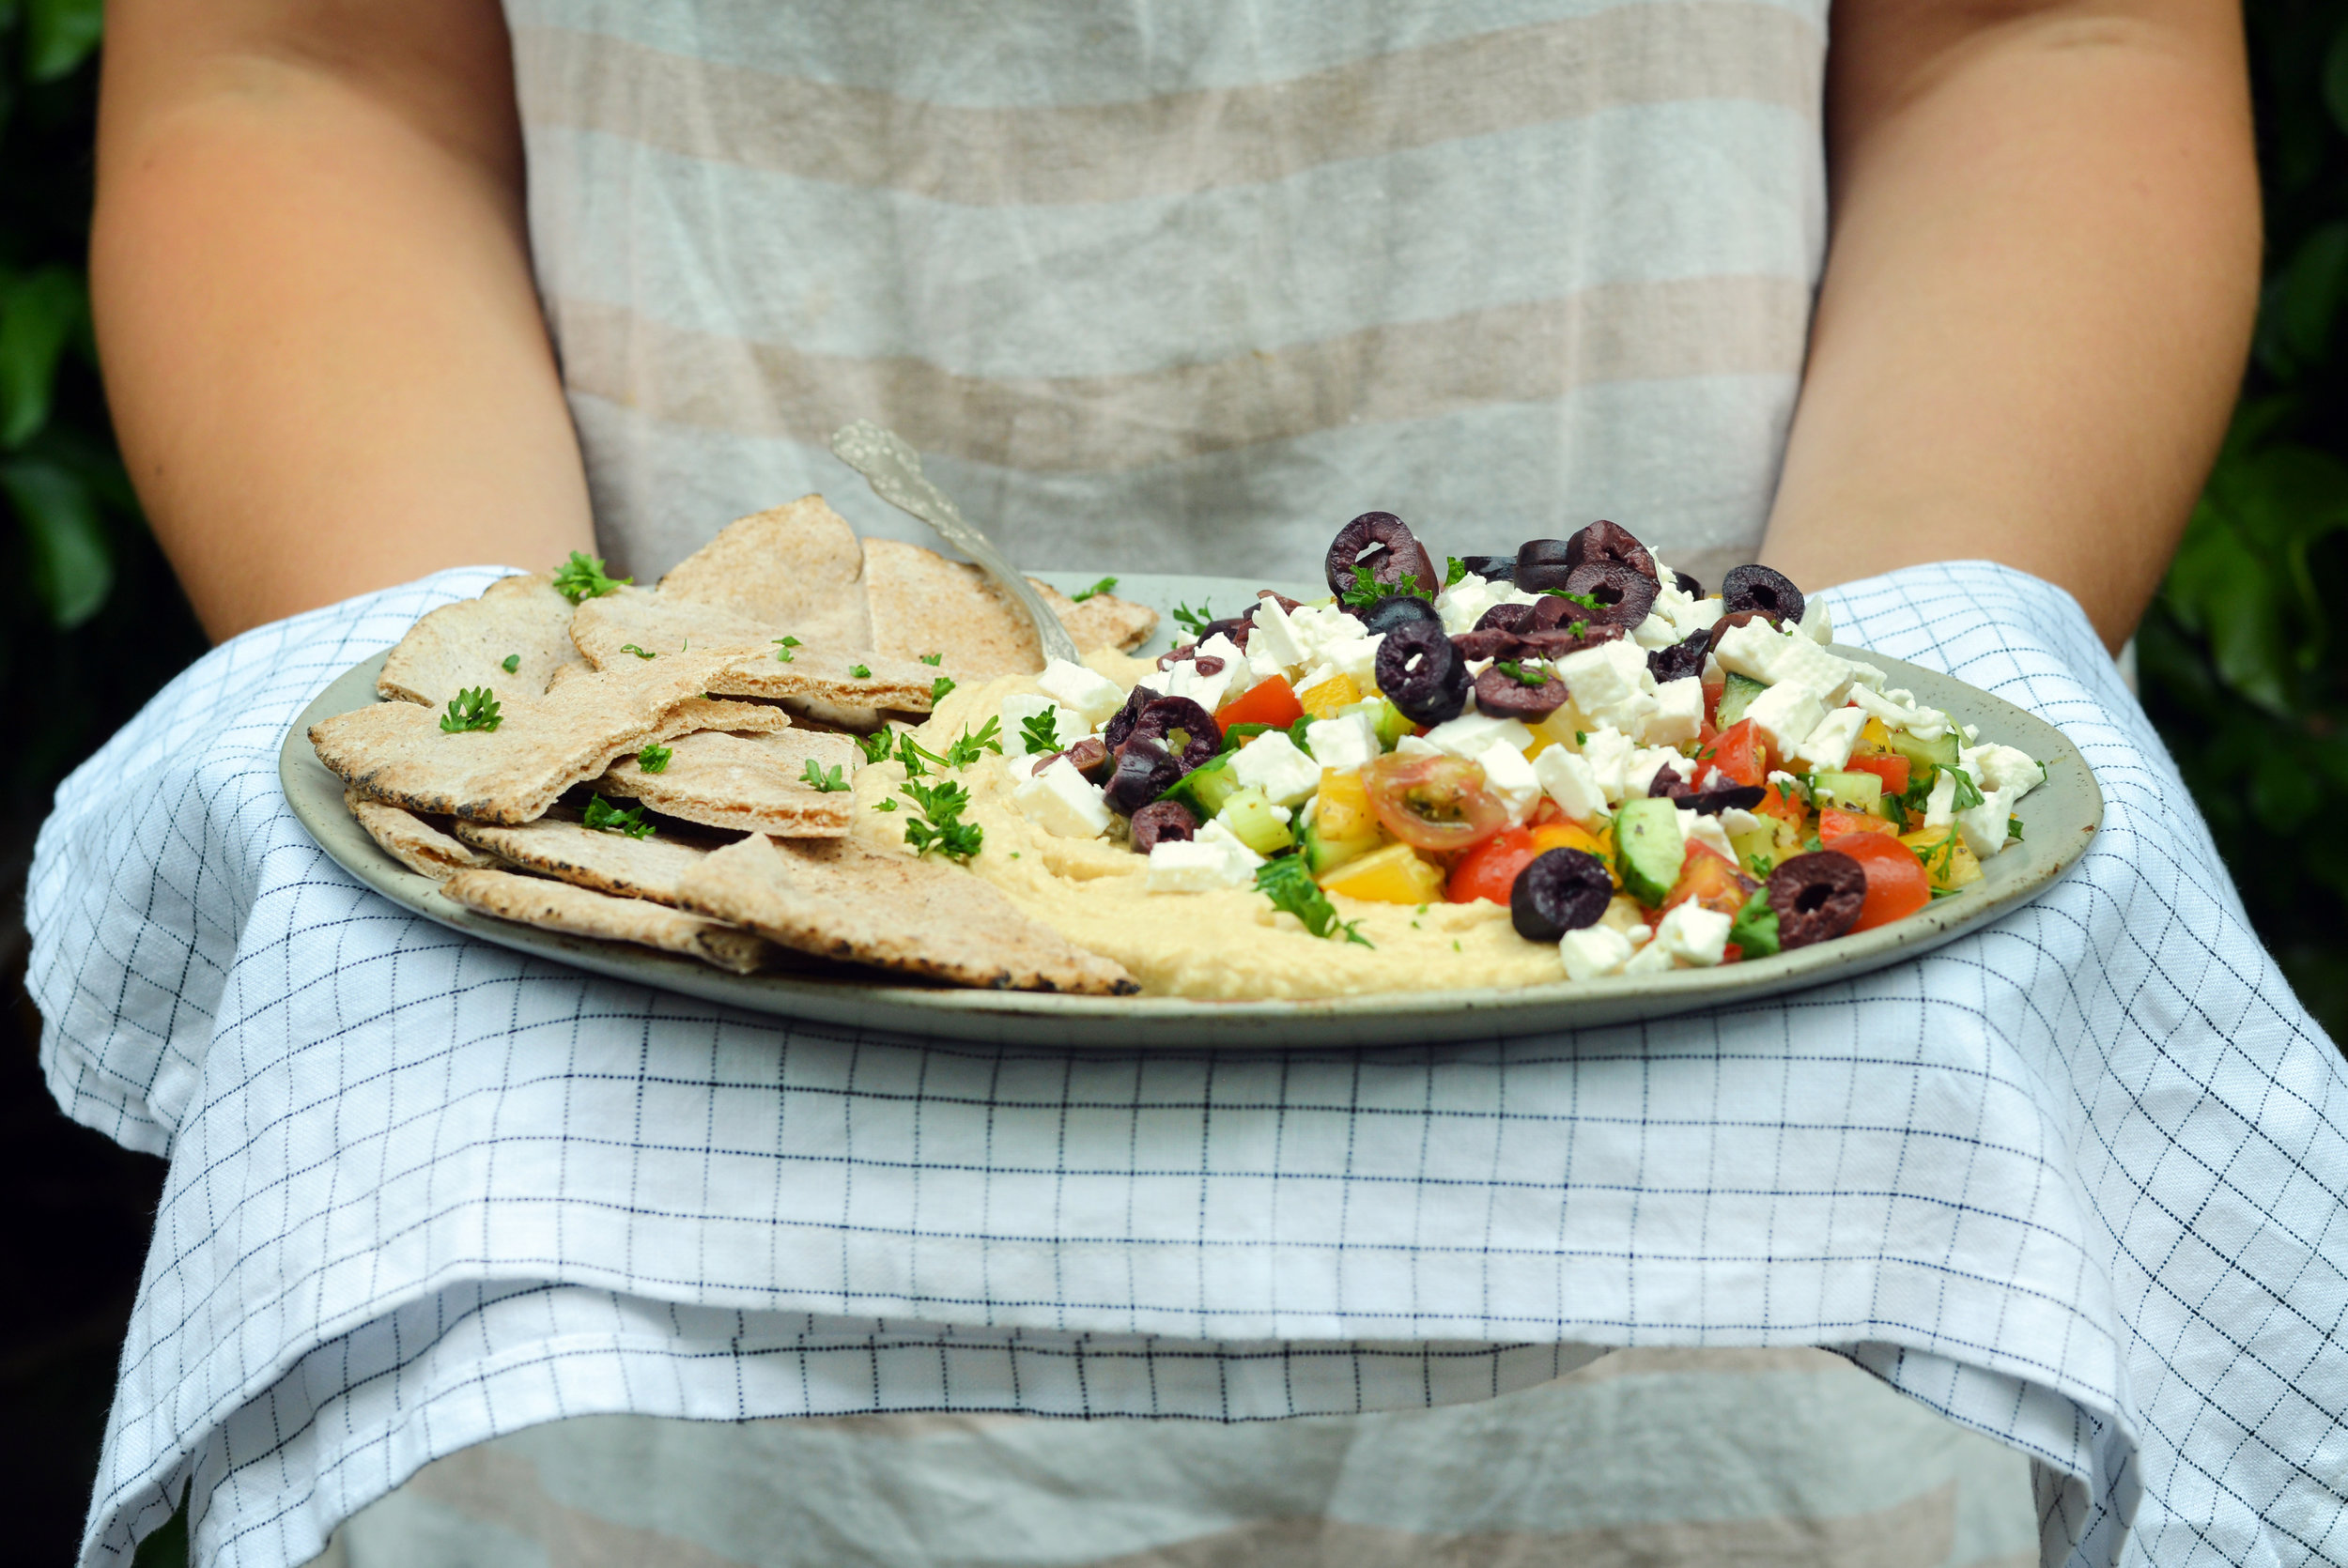 Greek Salad Loaded Hummus - Global Dish - Stephanie Arsenault